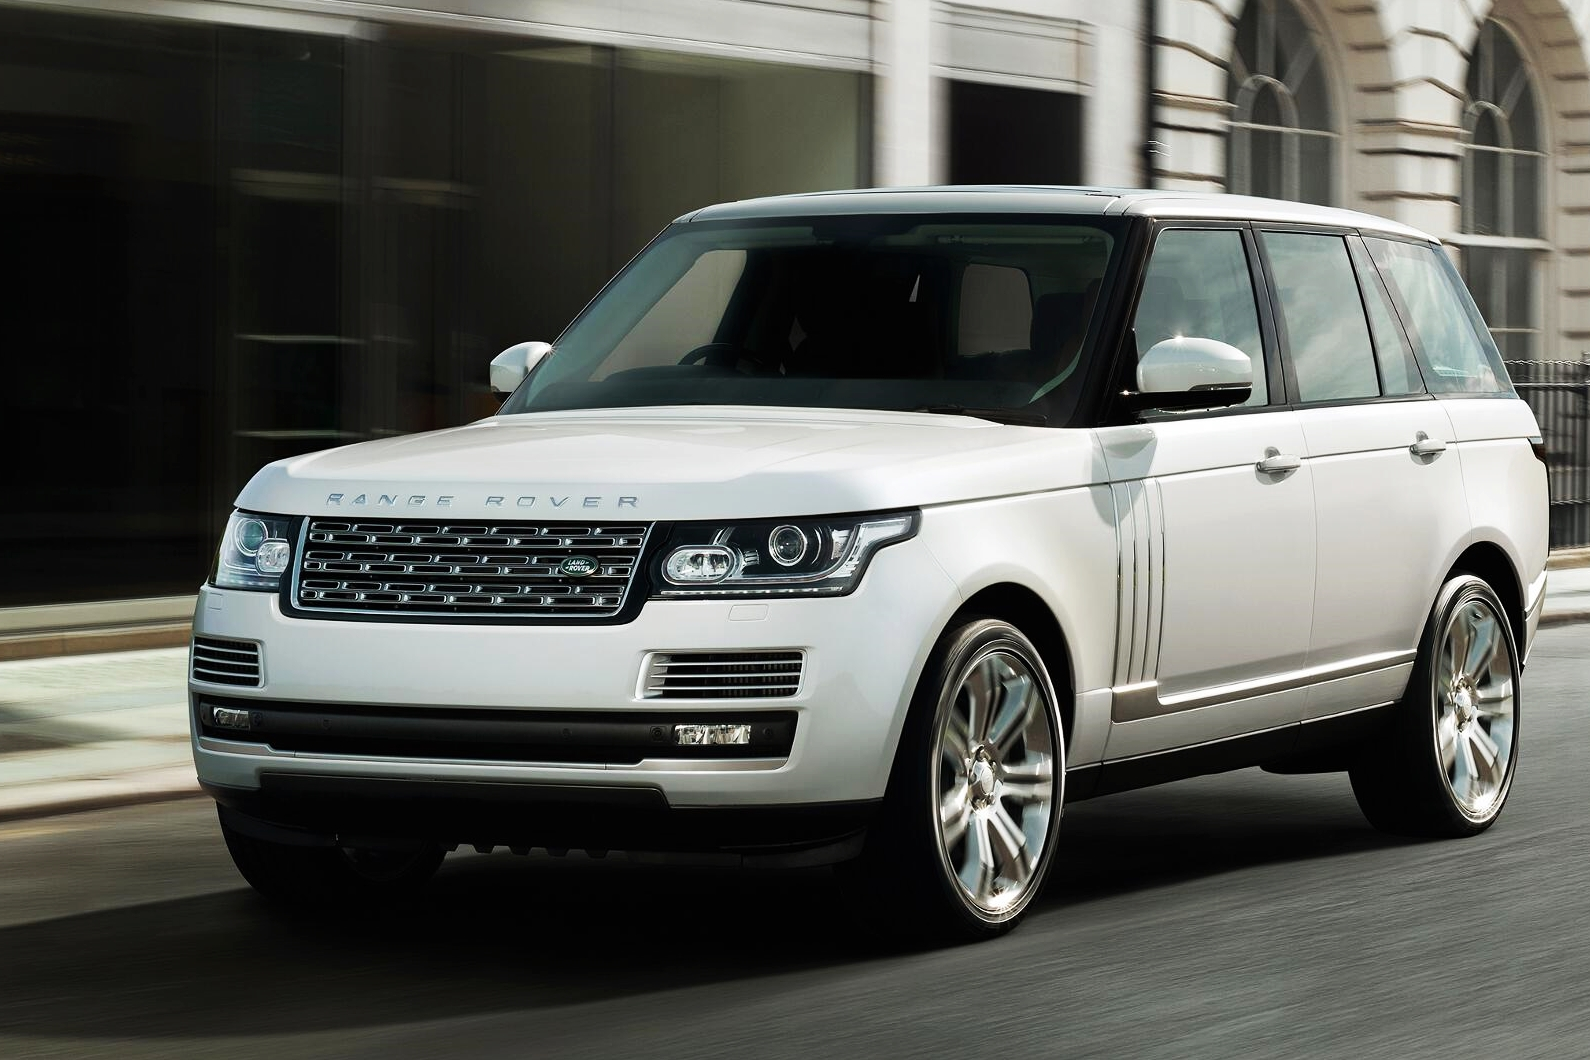 Image result for Hãng xe Land Rover